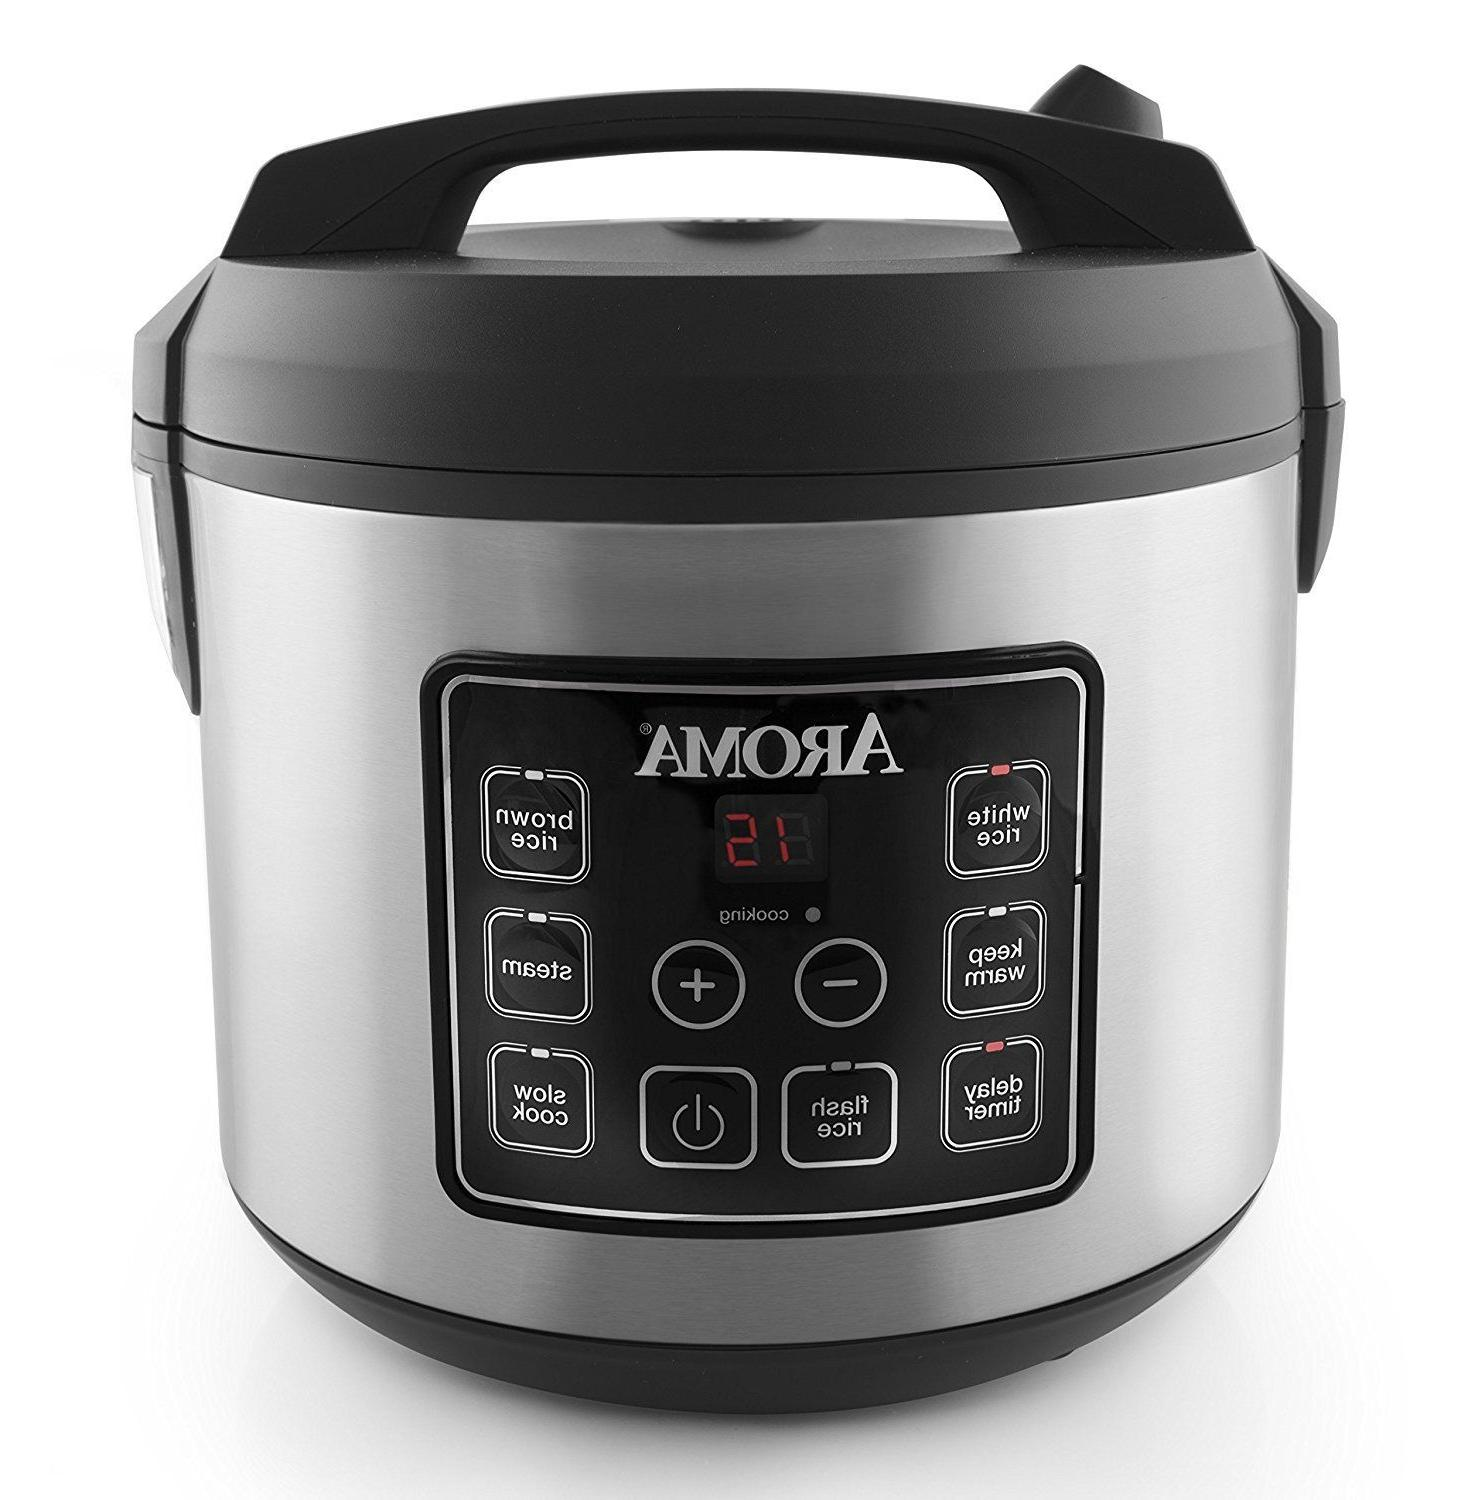 Rice Cooker Steamer Kitchen Food Digital Slow Dining Nonstic